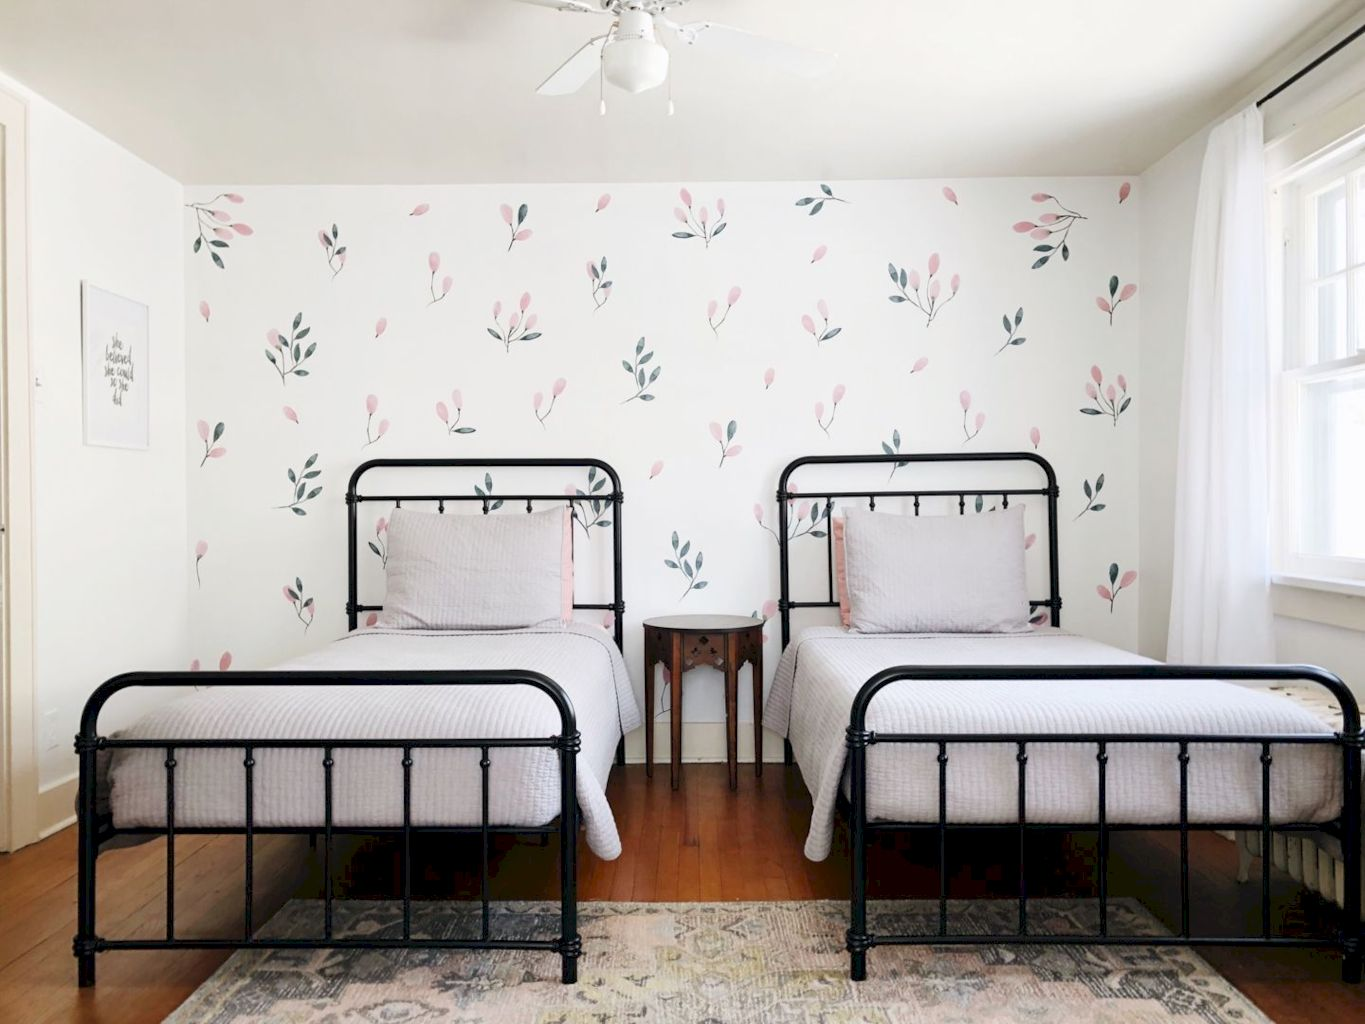 Refreshing sticker art wall decal giving floral accessories refreshing kids and nursery rooms wall design ideas Image 31